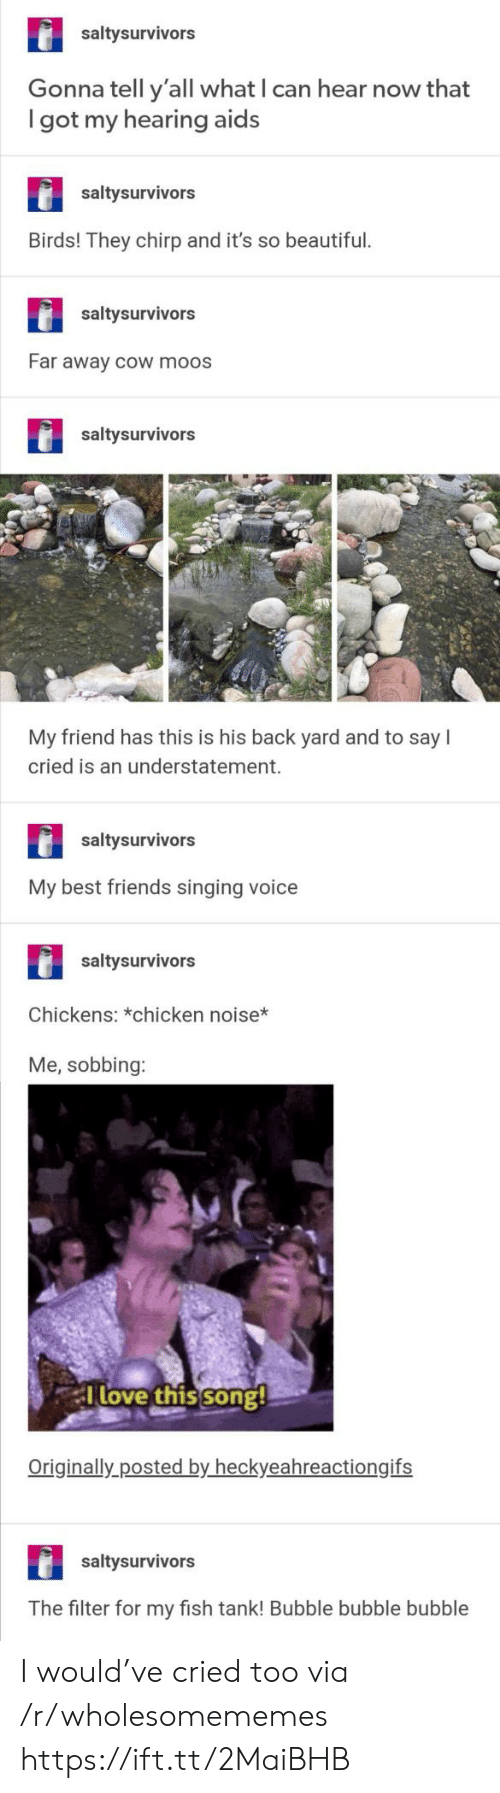 filter: saltysurvivors  Gonna tell y'all what I can hear now that  got my hearing aids  saltysurvivors  Birds! They chirp and it's so beautiful.  saltysurvivors  Far away cOw moos  saltysurvivors  My friend has this is his back yard and to say  cried is an understatement.  saltysurvivors  My best friends singing voice  saltysurvivors  Chickens: *chicken noise*  Me, sobbing:  Tlove this song!  Originally posted by heckyeahreactiongifs  saltysurvivors  The filter for my fish tank! Bubble bubble bubble I would've cried too via /r/wholesomememes https://ift.tt/2MaiBHB